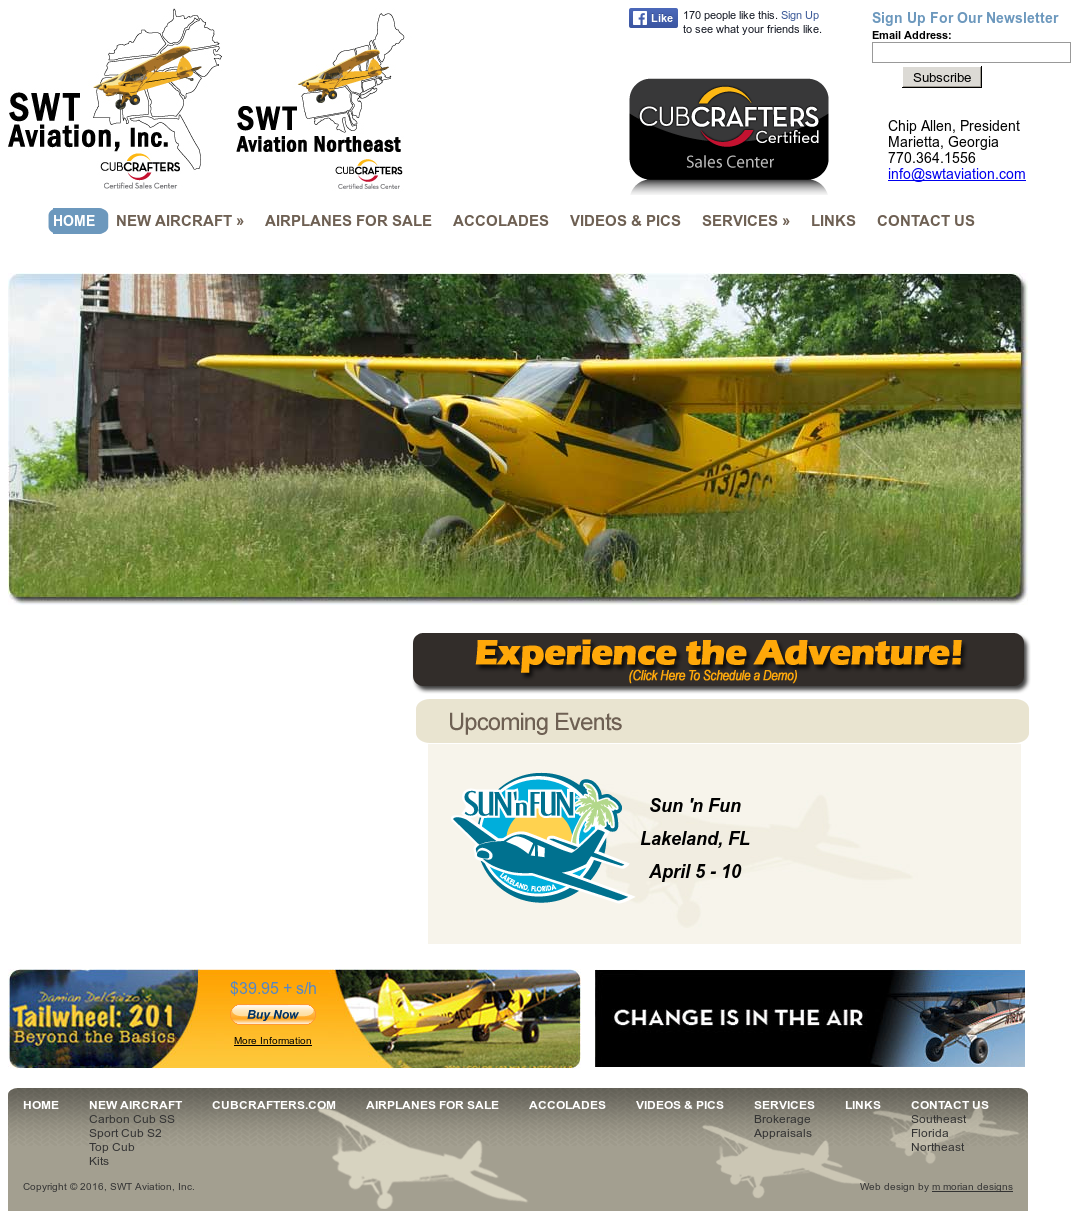 SWT Aviation Competitors, Revenue and Employees - Owler Company Profile